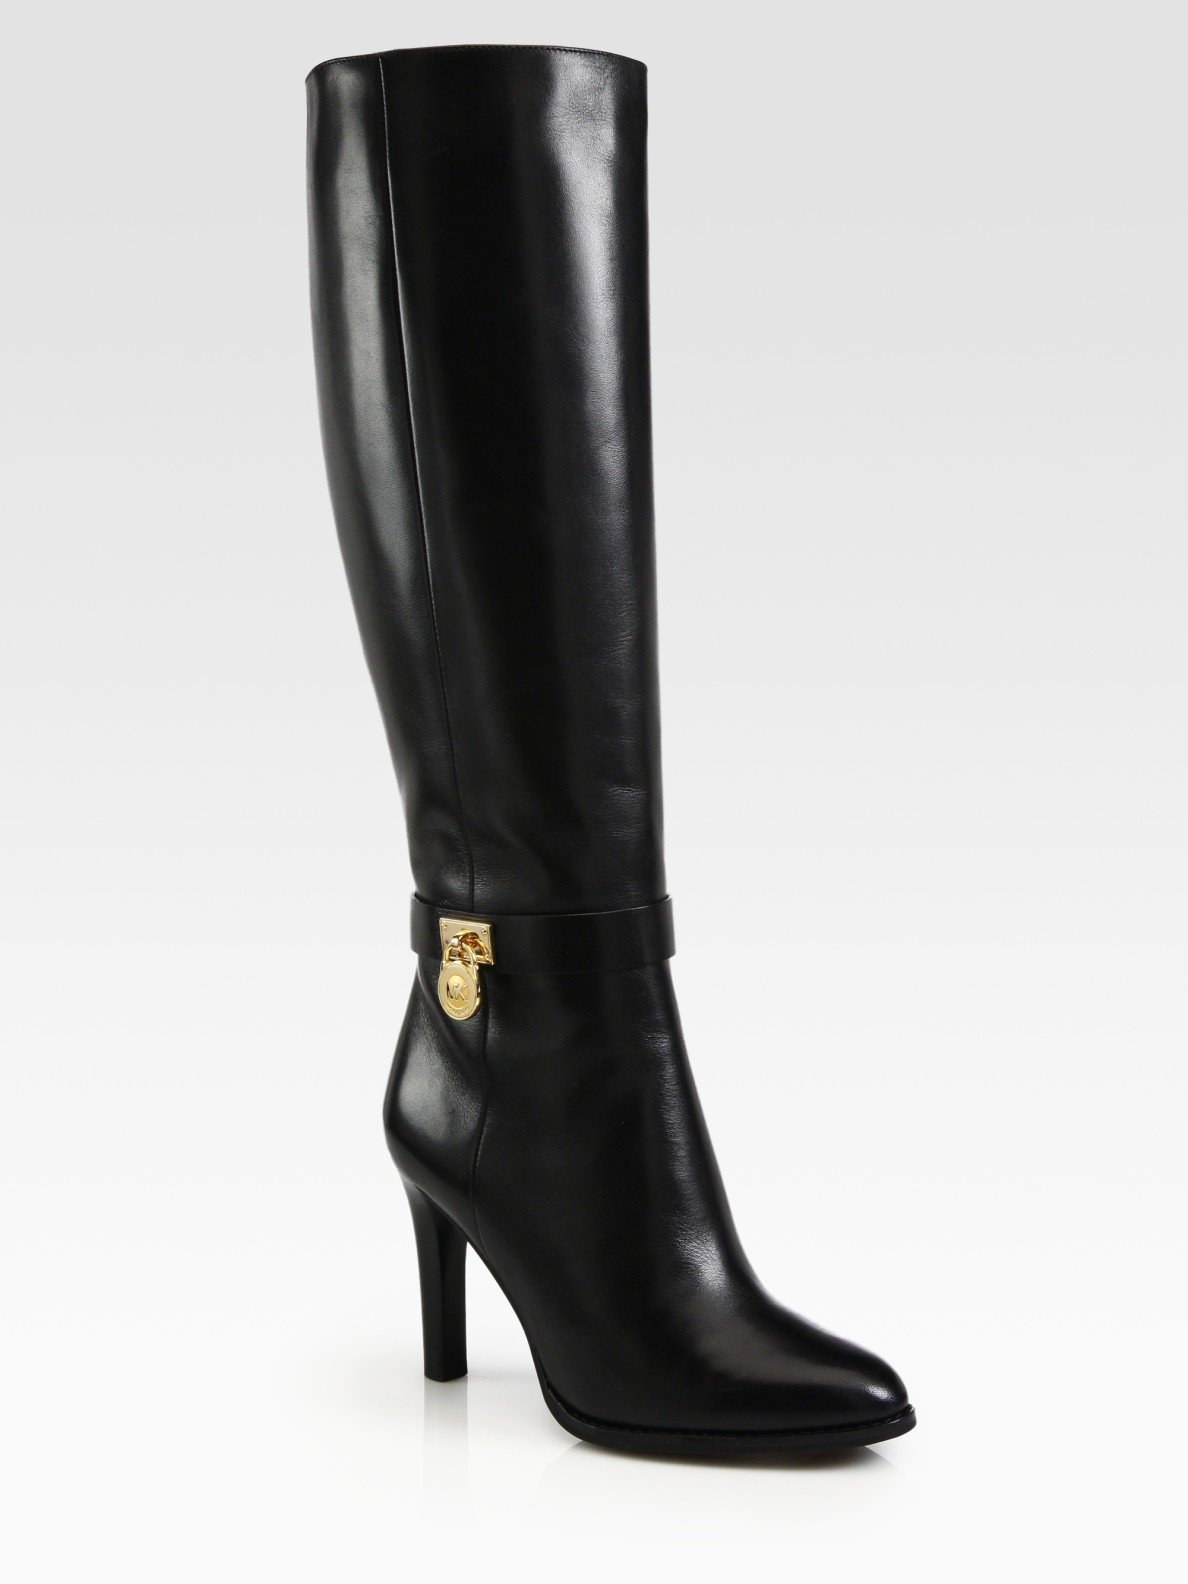 Michael Michael Kors Hamilton Leather Boots in Black